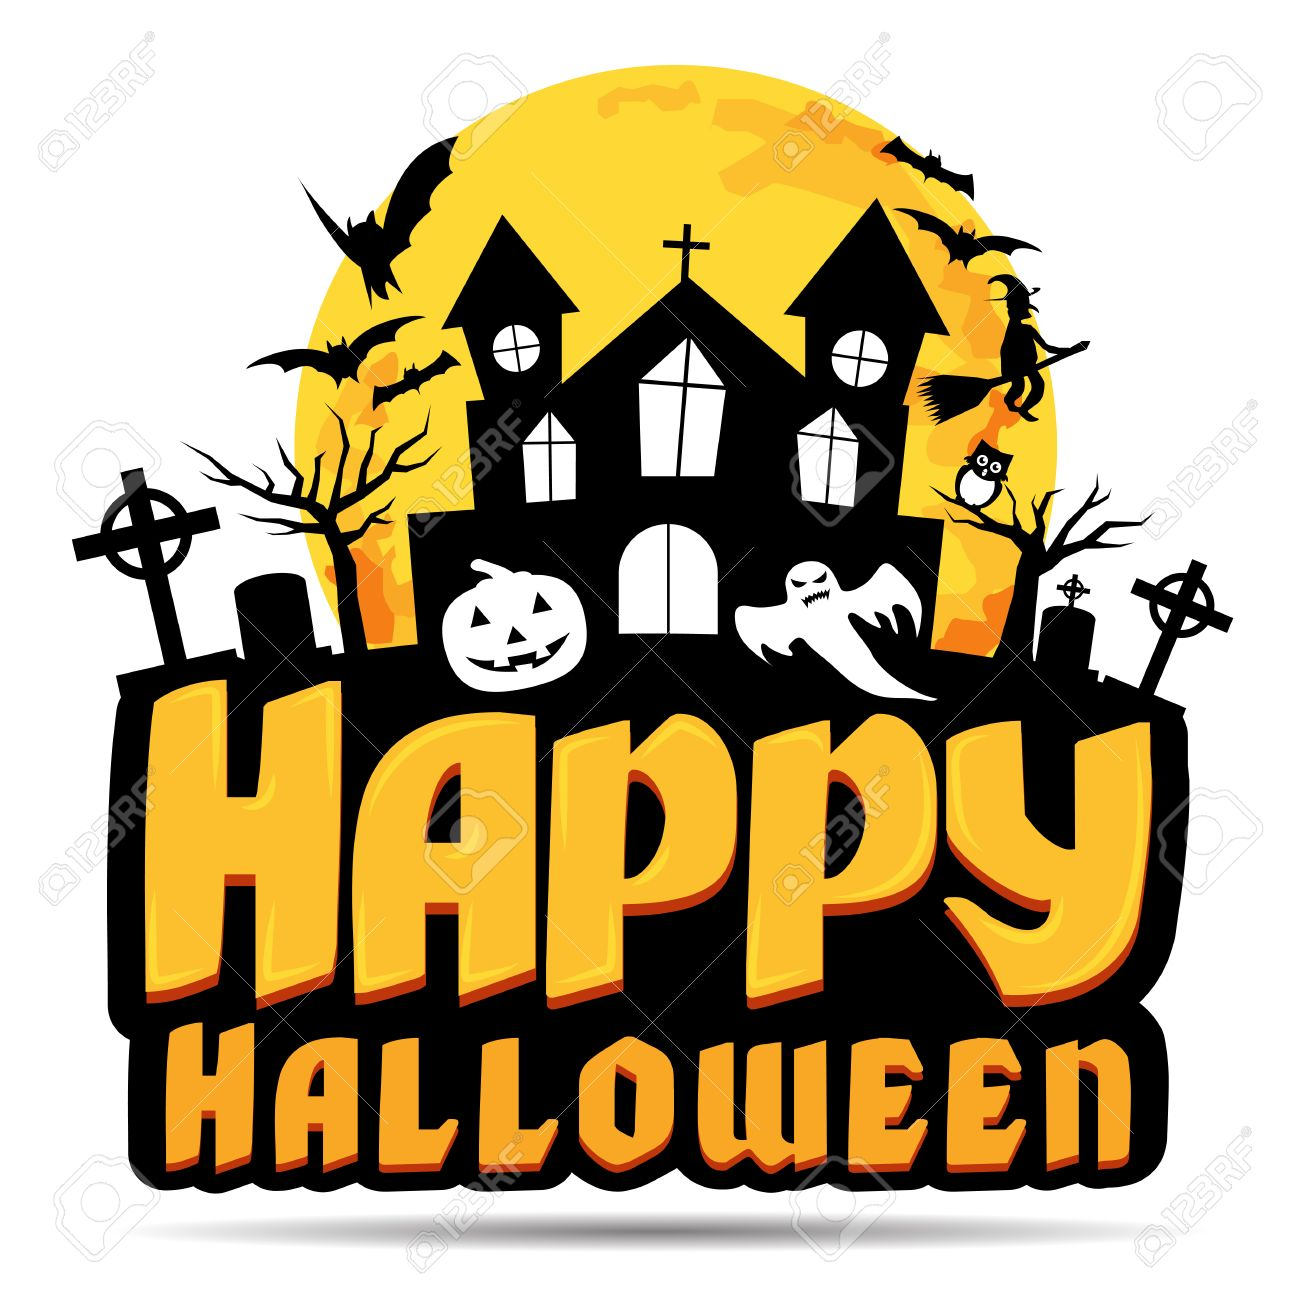 Happy Halloween Logo. Vector Illustration. Royalty Free Cliparts, Vectors, And Stock Illustration. Image 48691005.